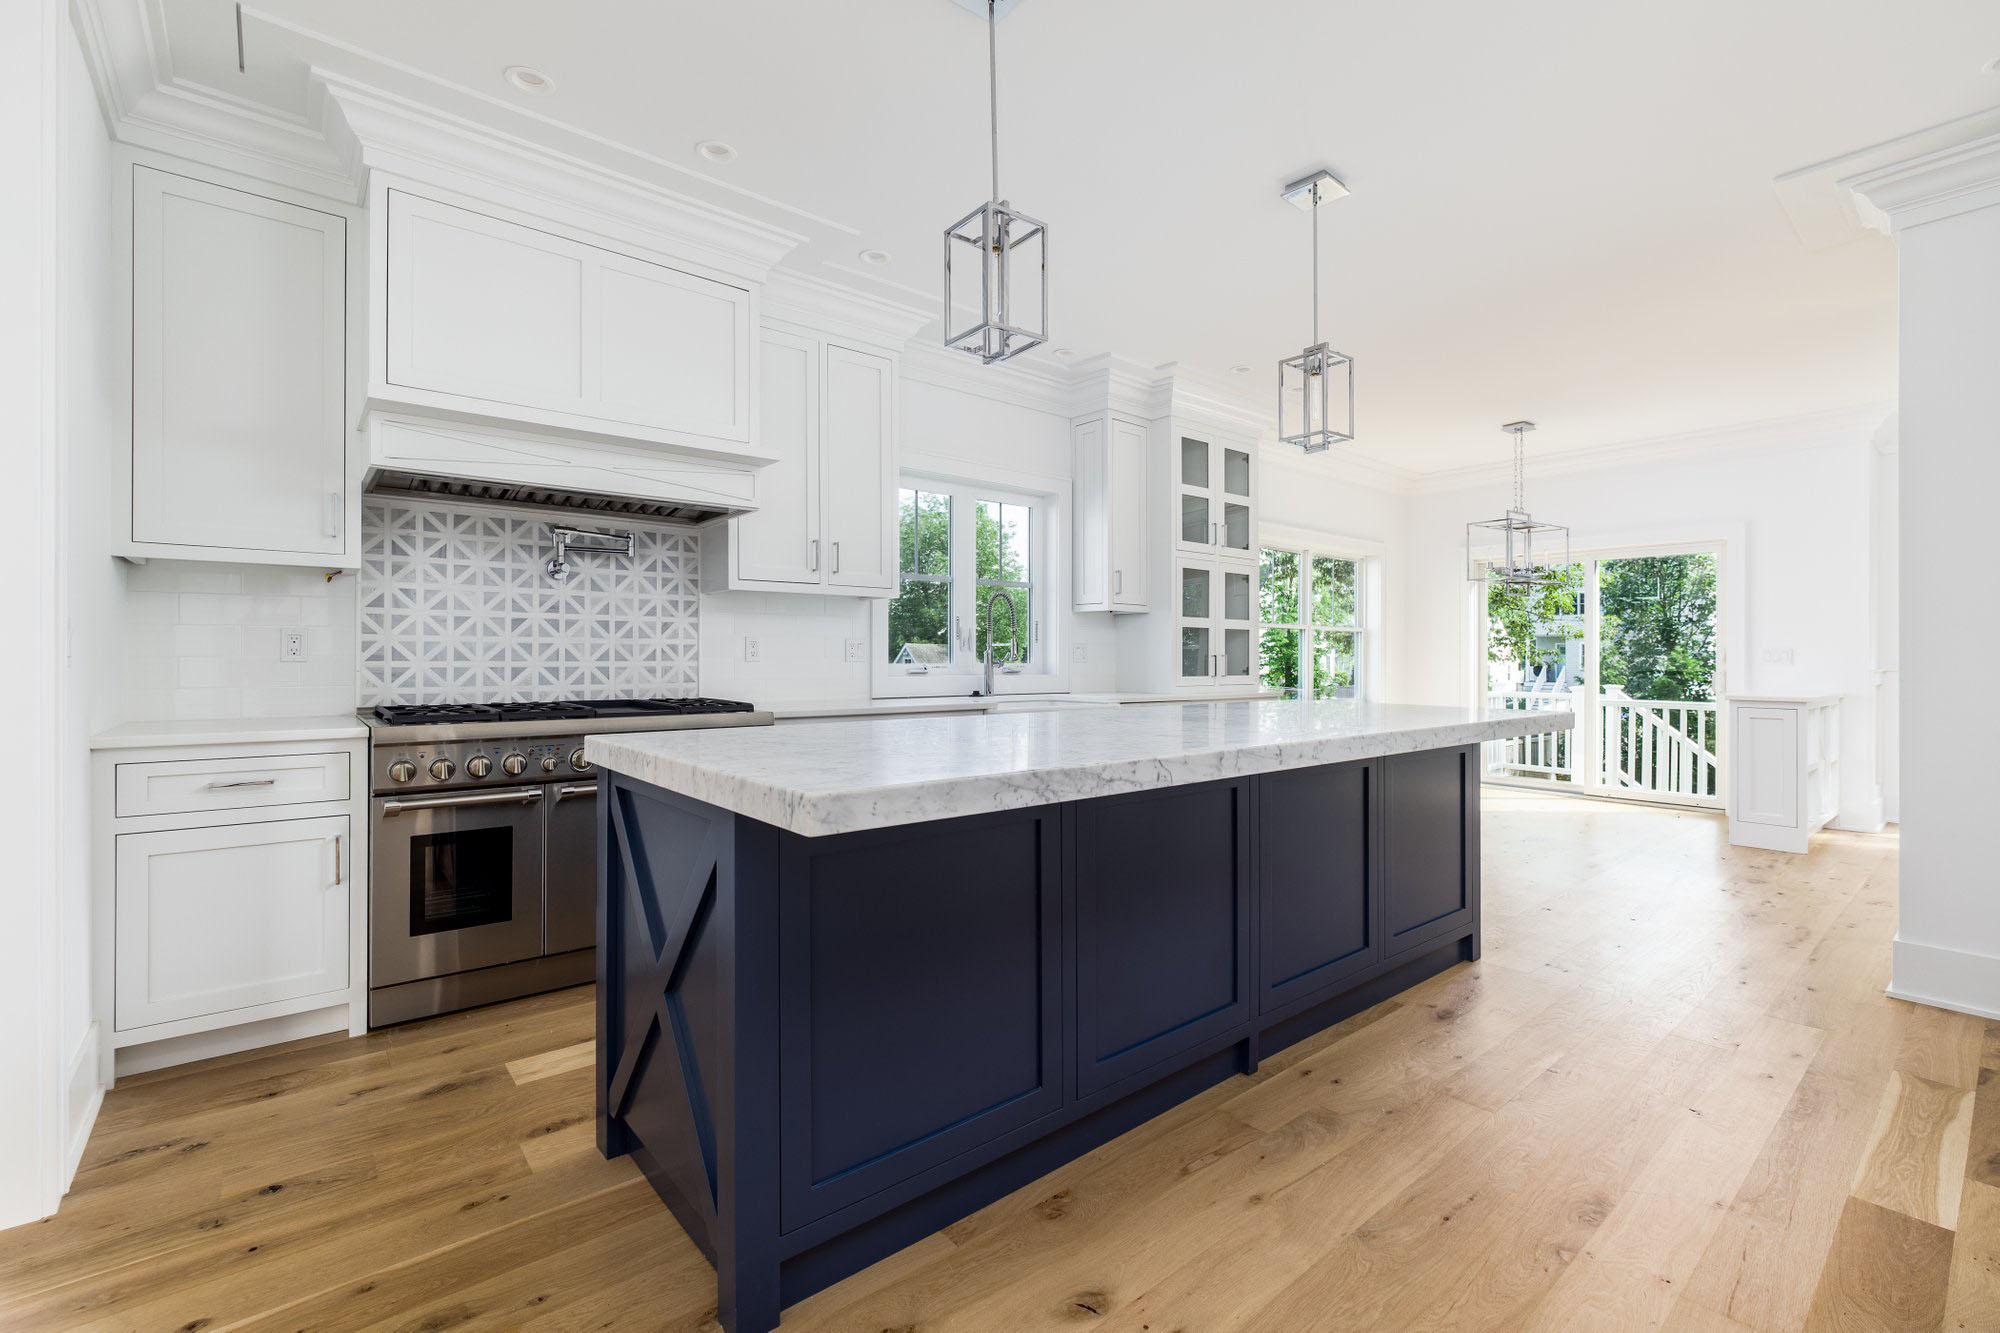 Two tone kitchen cabinets featuring white shaker style uppers and lowers with a dark blue island.